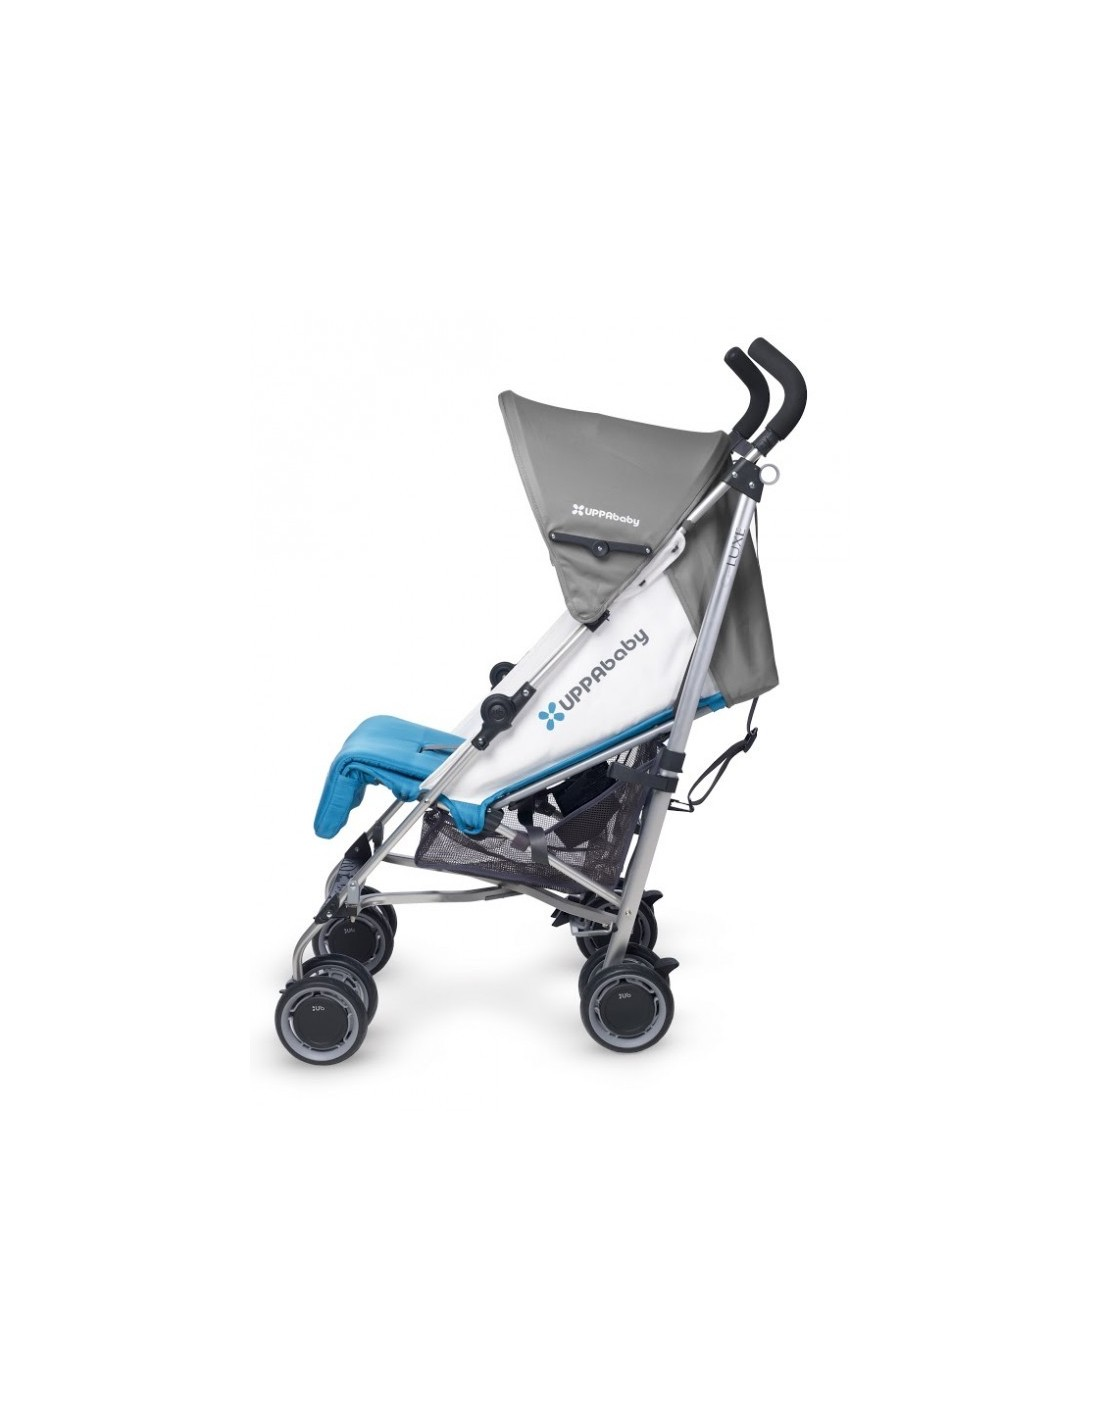 Silla de paseo uppababy g luxe for Silla uppababy vista